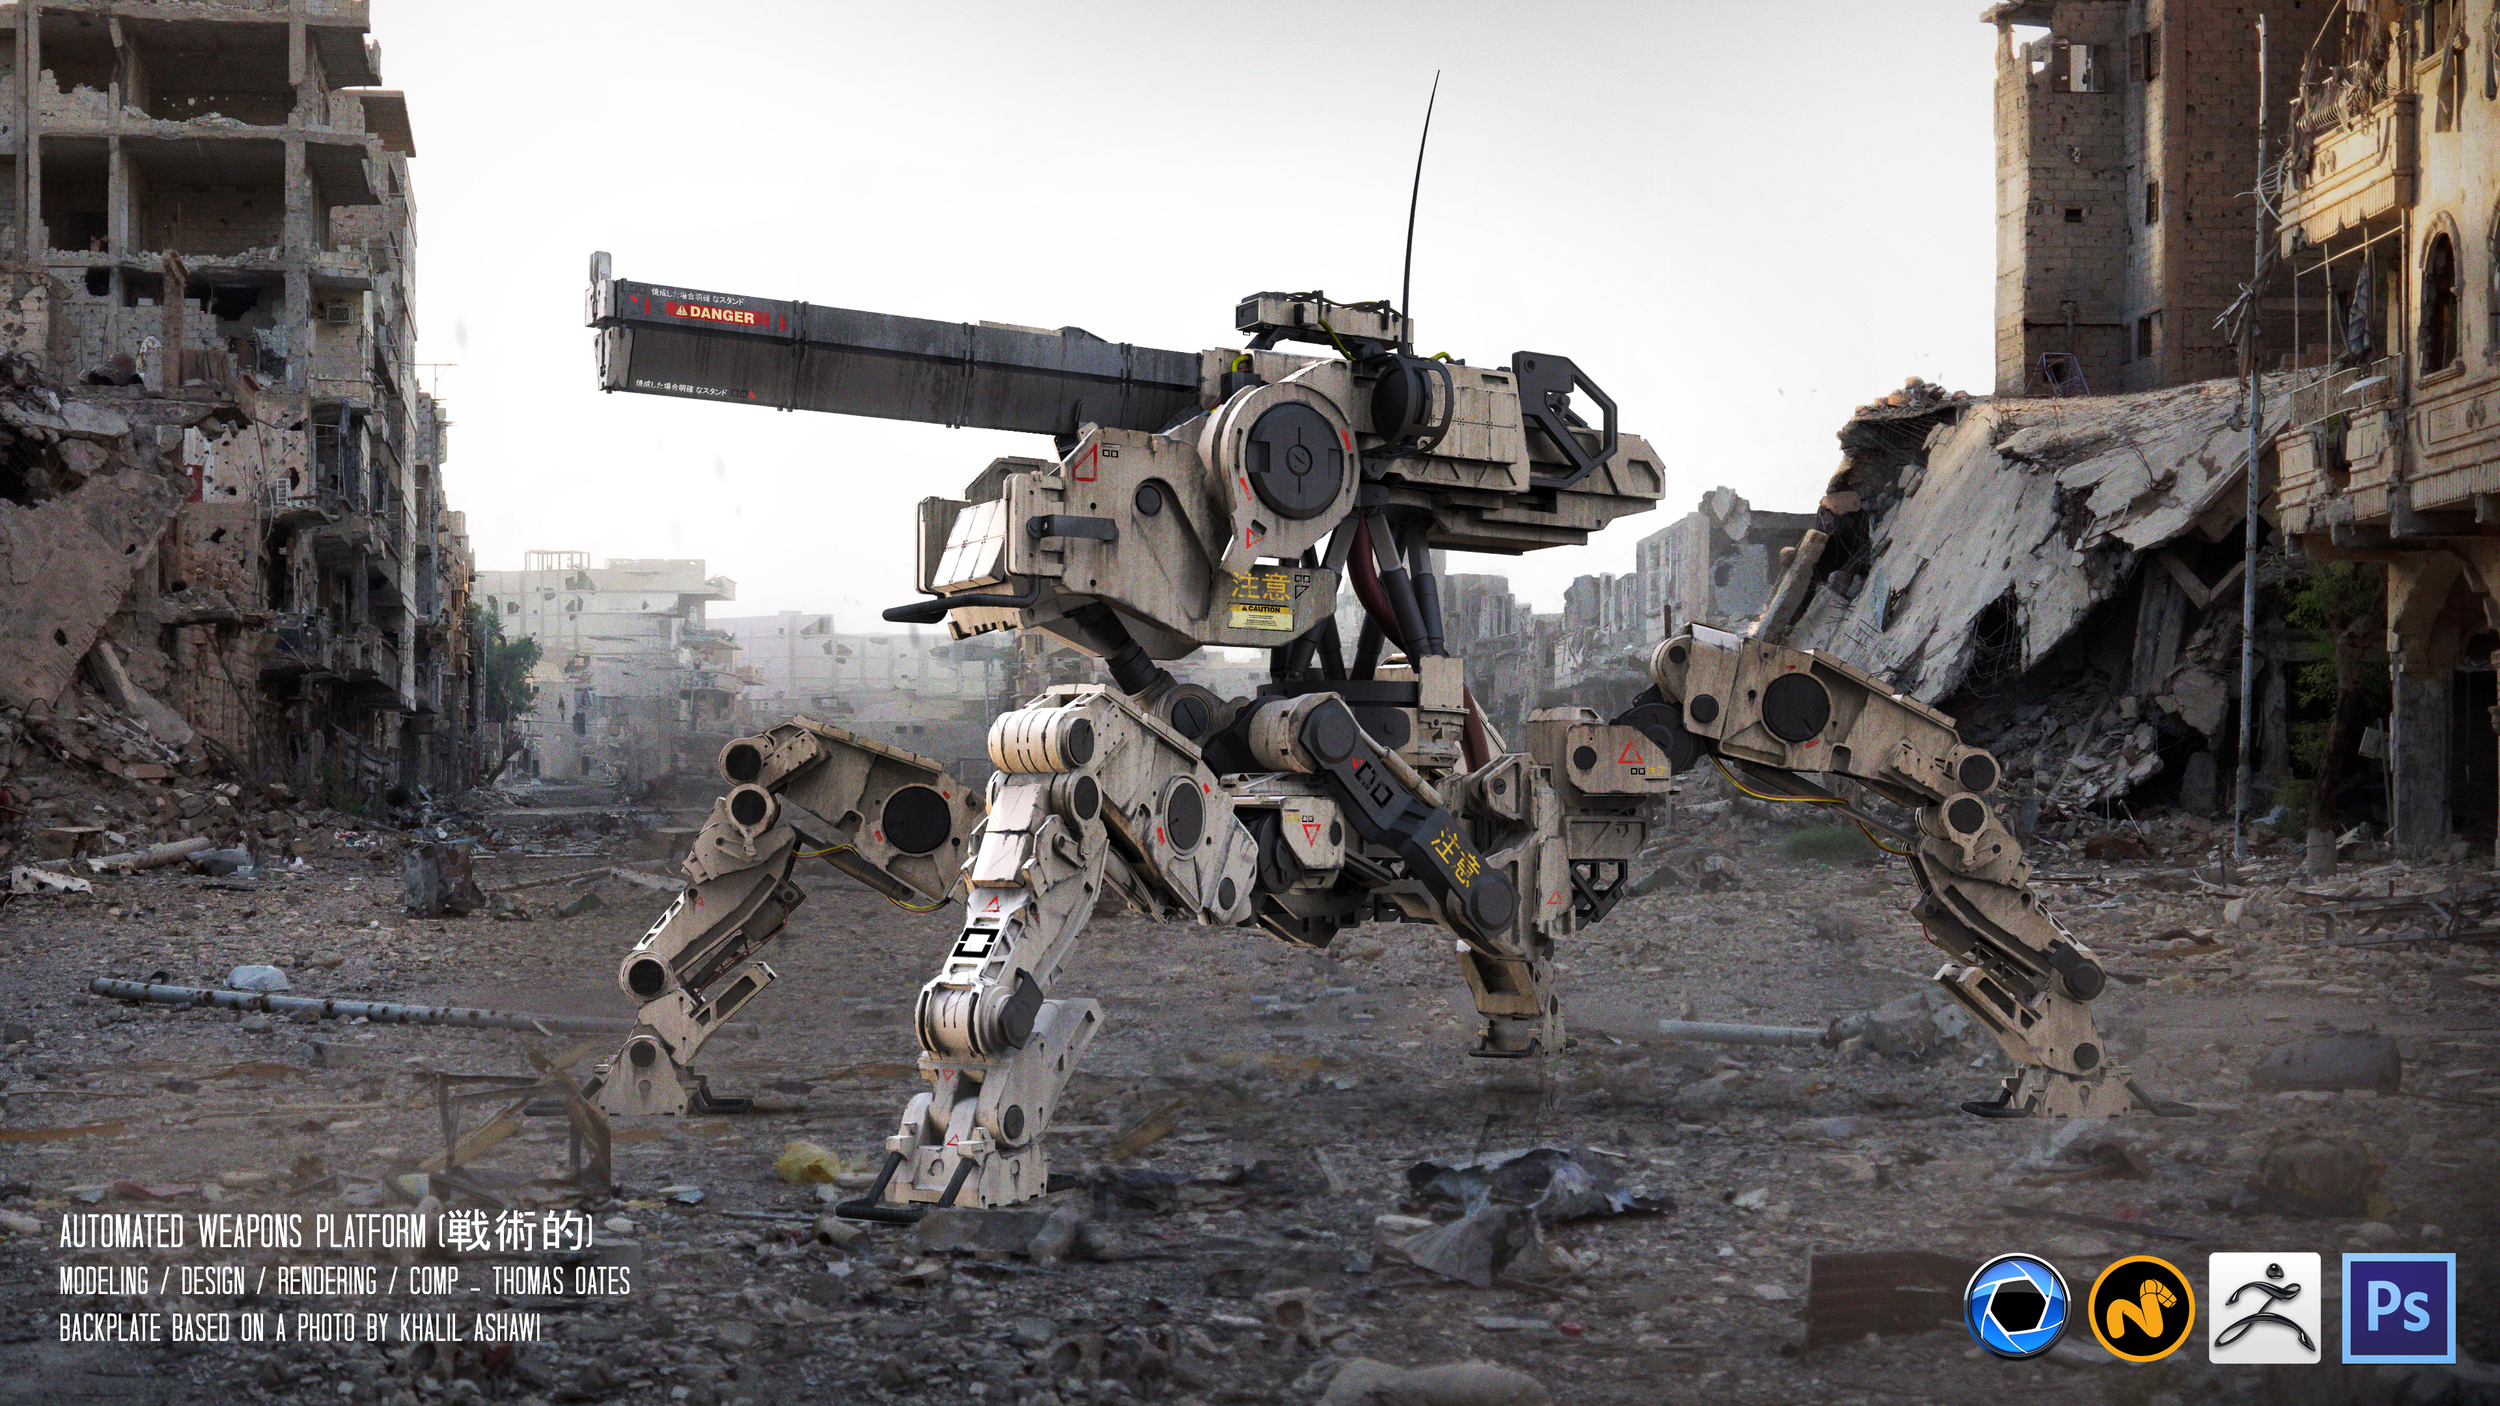 Automated Weapons Platform    The A.W.P is an capable of traversing difficult terrain with ease, It has the mobility to enter remote locations inaccessible or inhospitable to regular soldiers.       Equipped with a variety of weapons this model is fittes with a railgun for engaging long range targets.